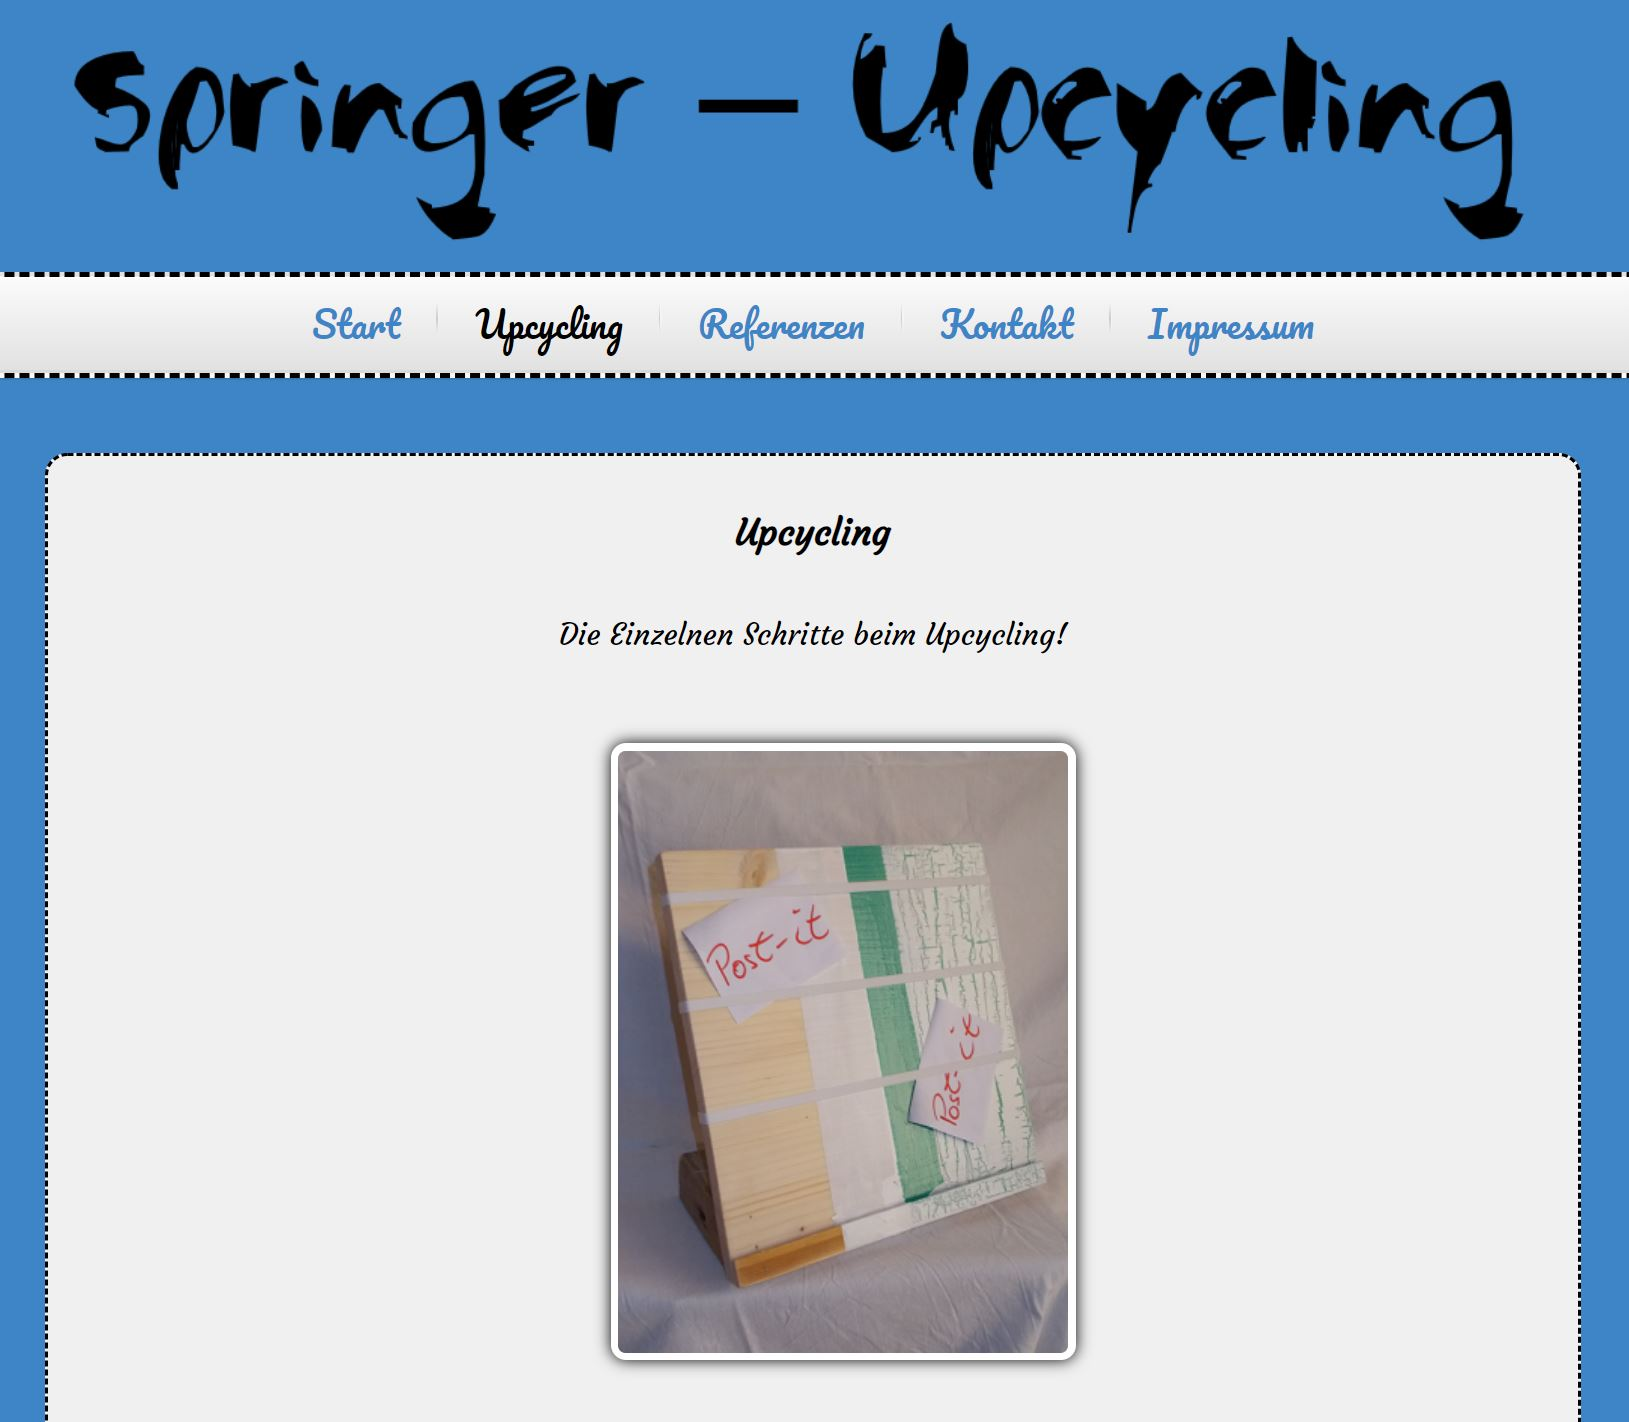 Springer - Upcycling